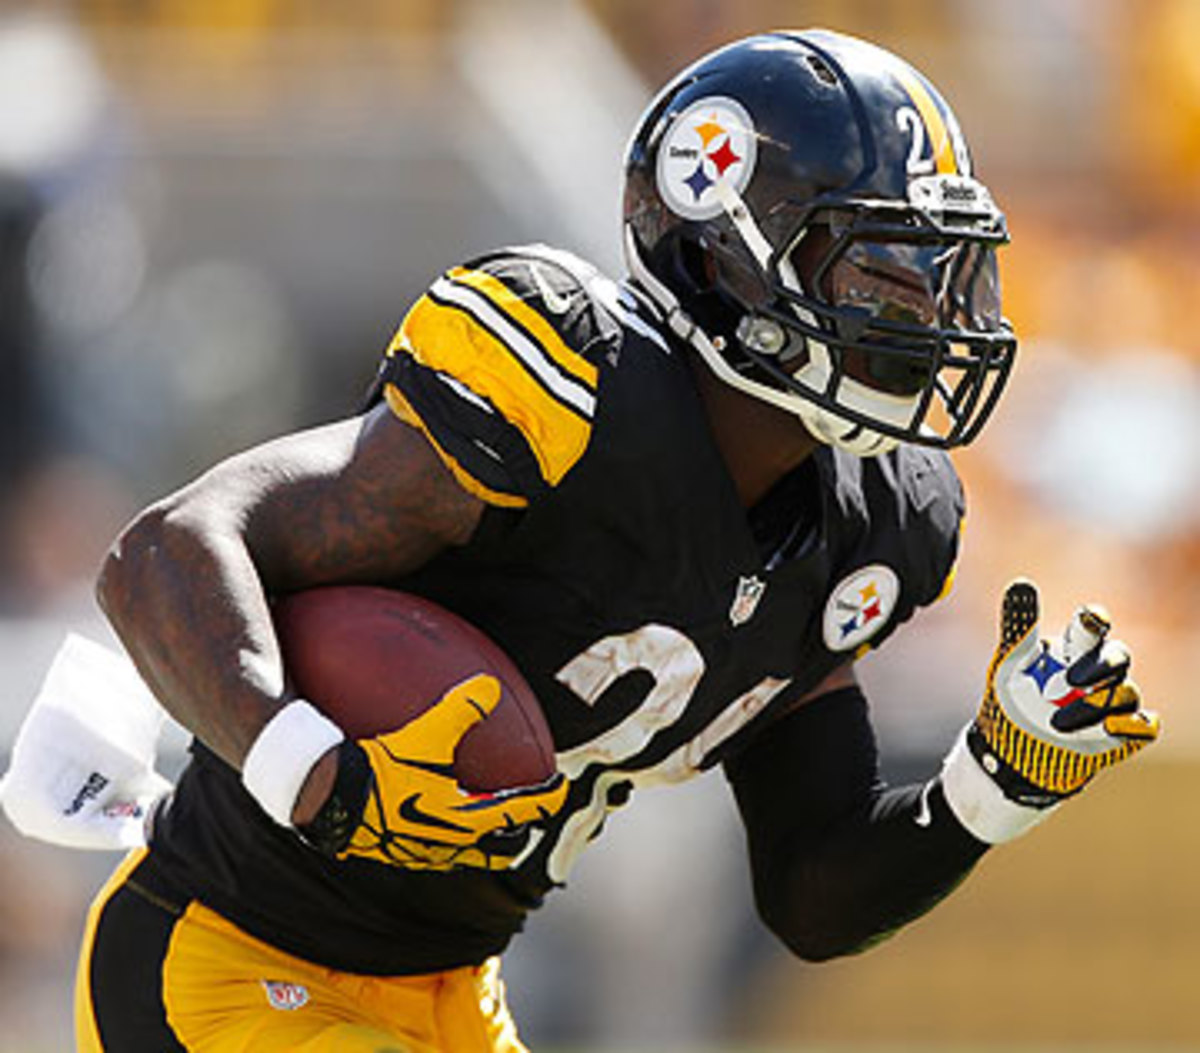 Le'Veon Bell averaged 3.5 yards per carry in 13 games as a rookie in 2013. He's at 5.9 through three games this season.